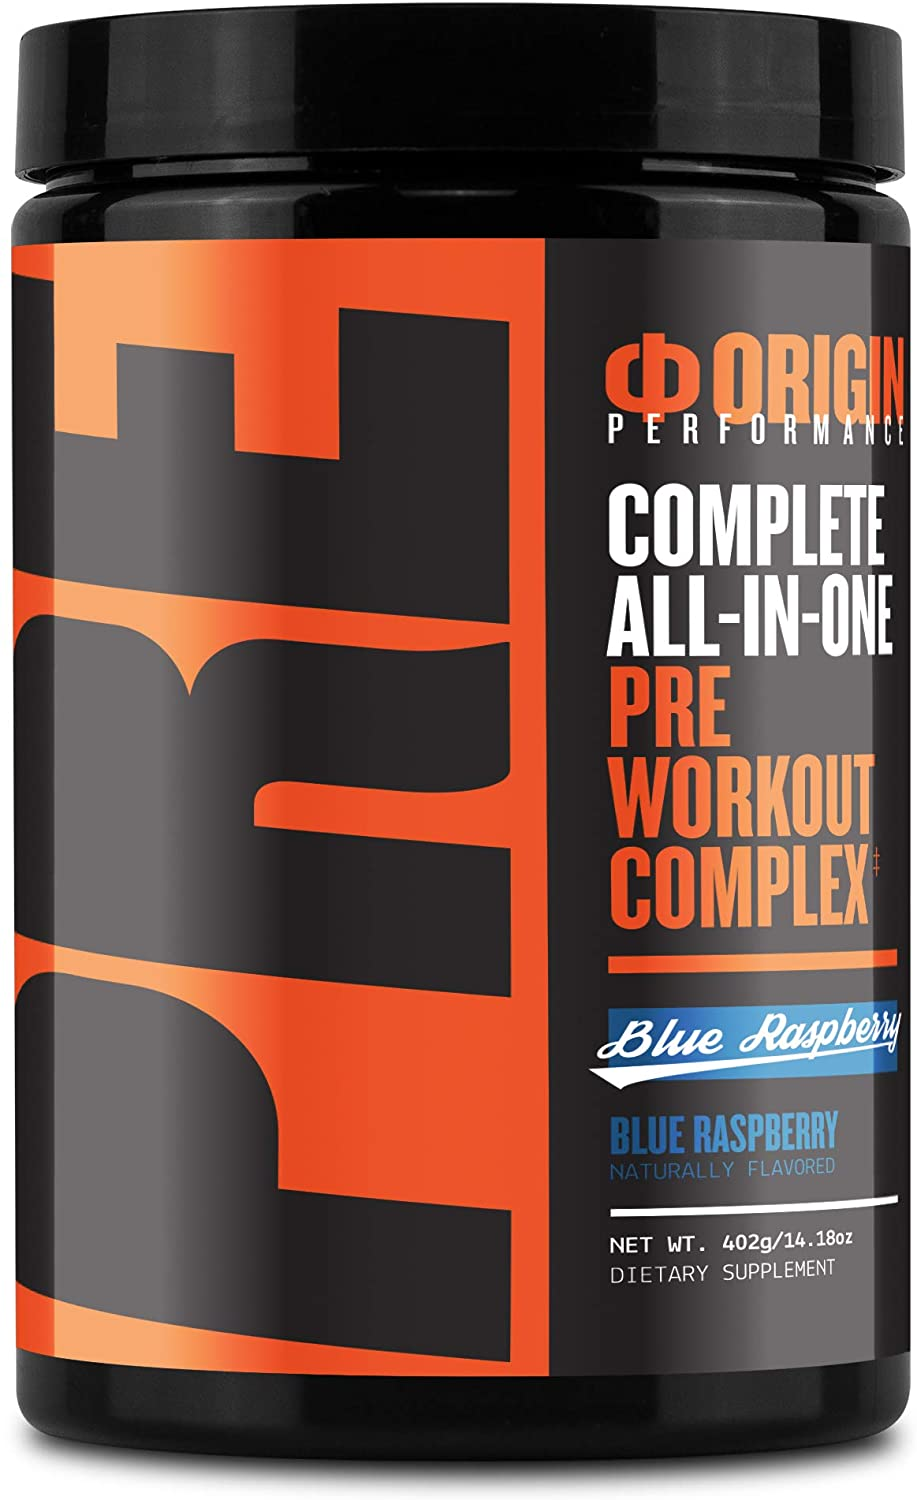 origin pre workout